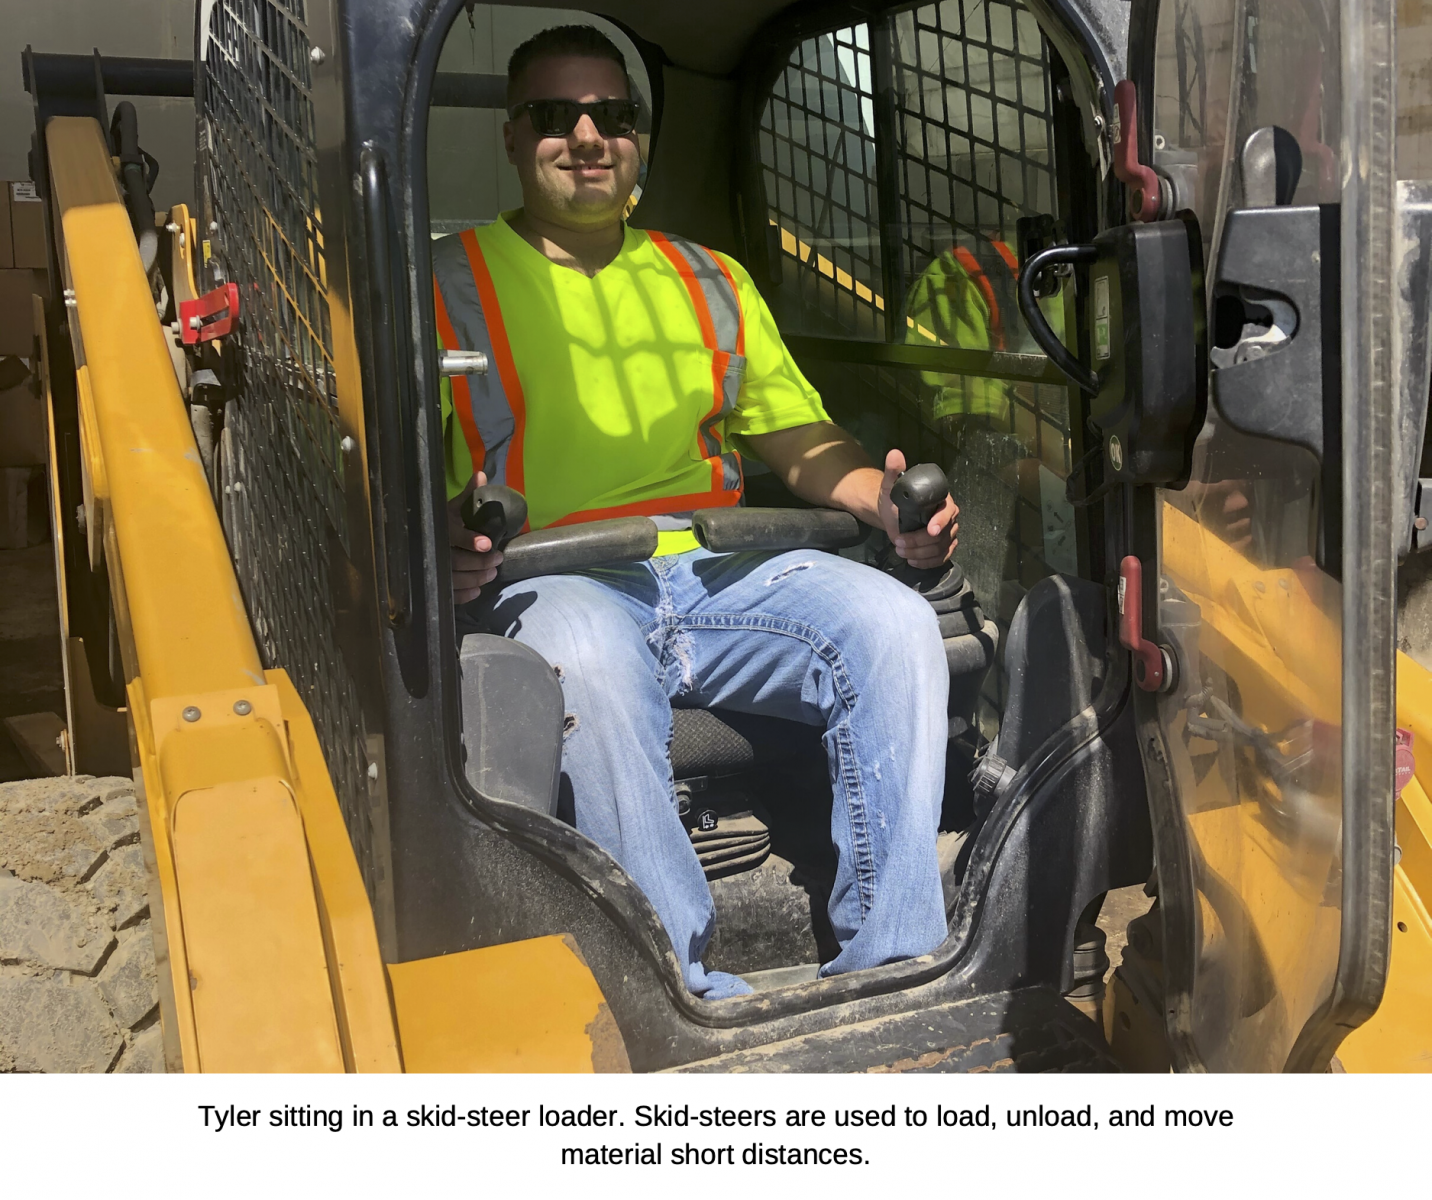 Tyler sitting in a skid-steer loader. Skid-steers are used to load, unload, and move material short distances.